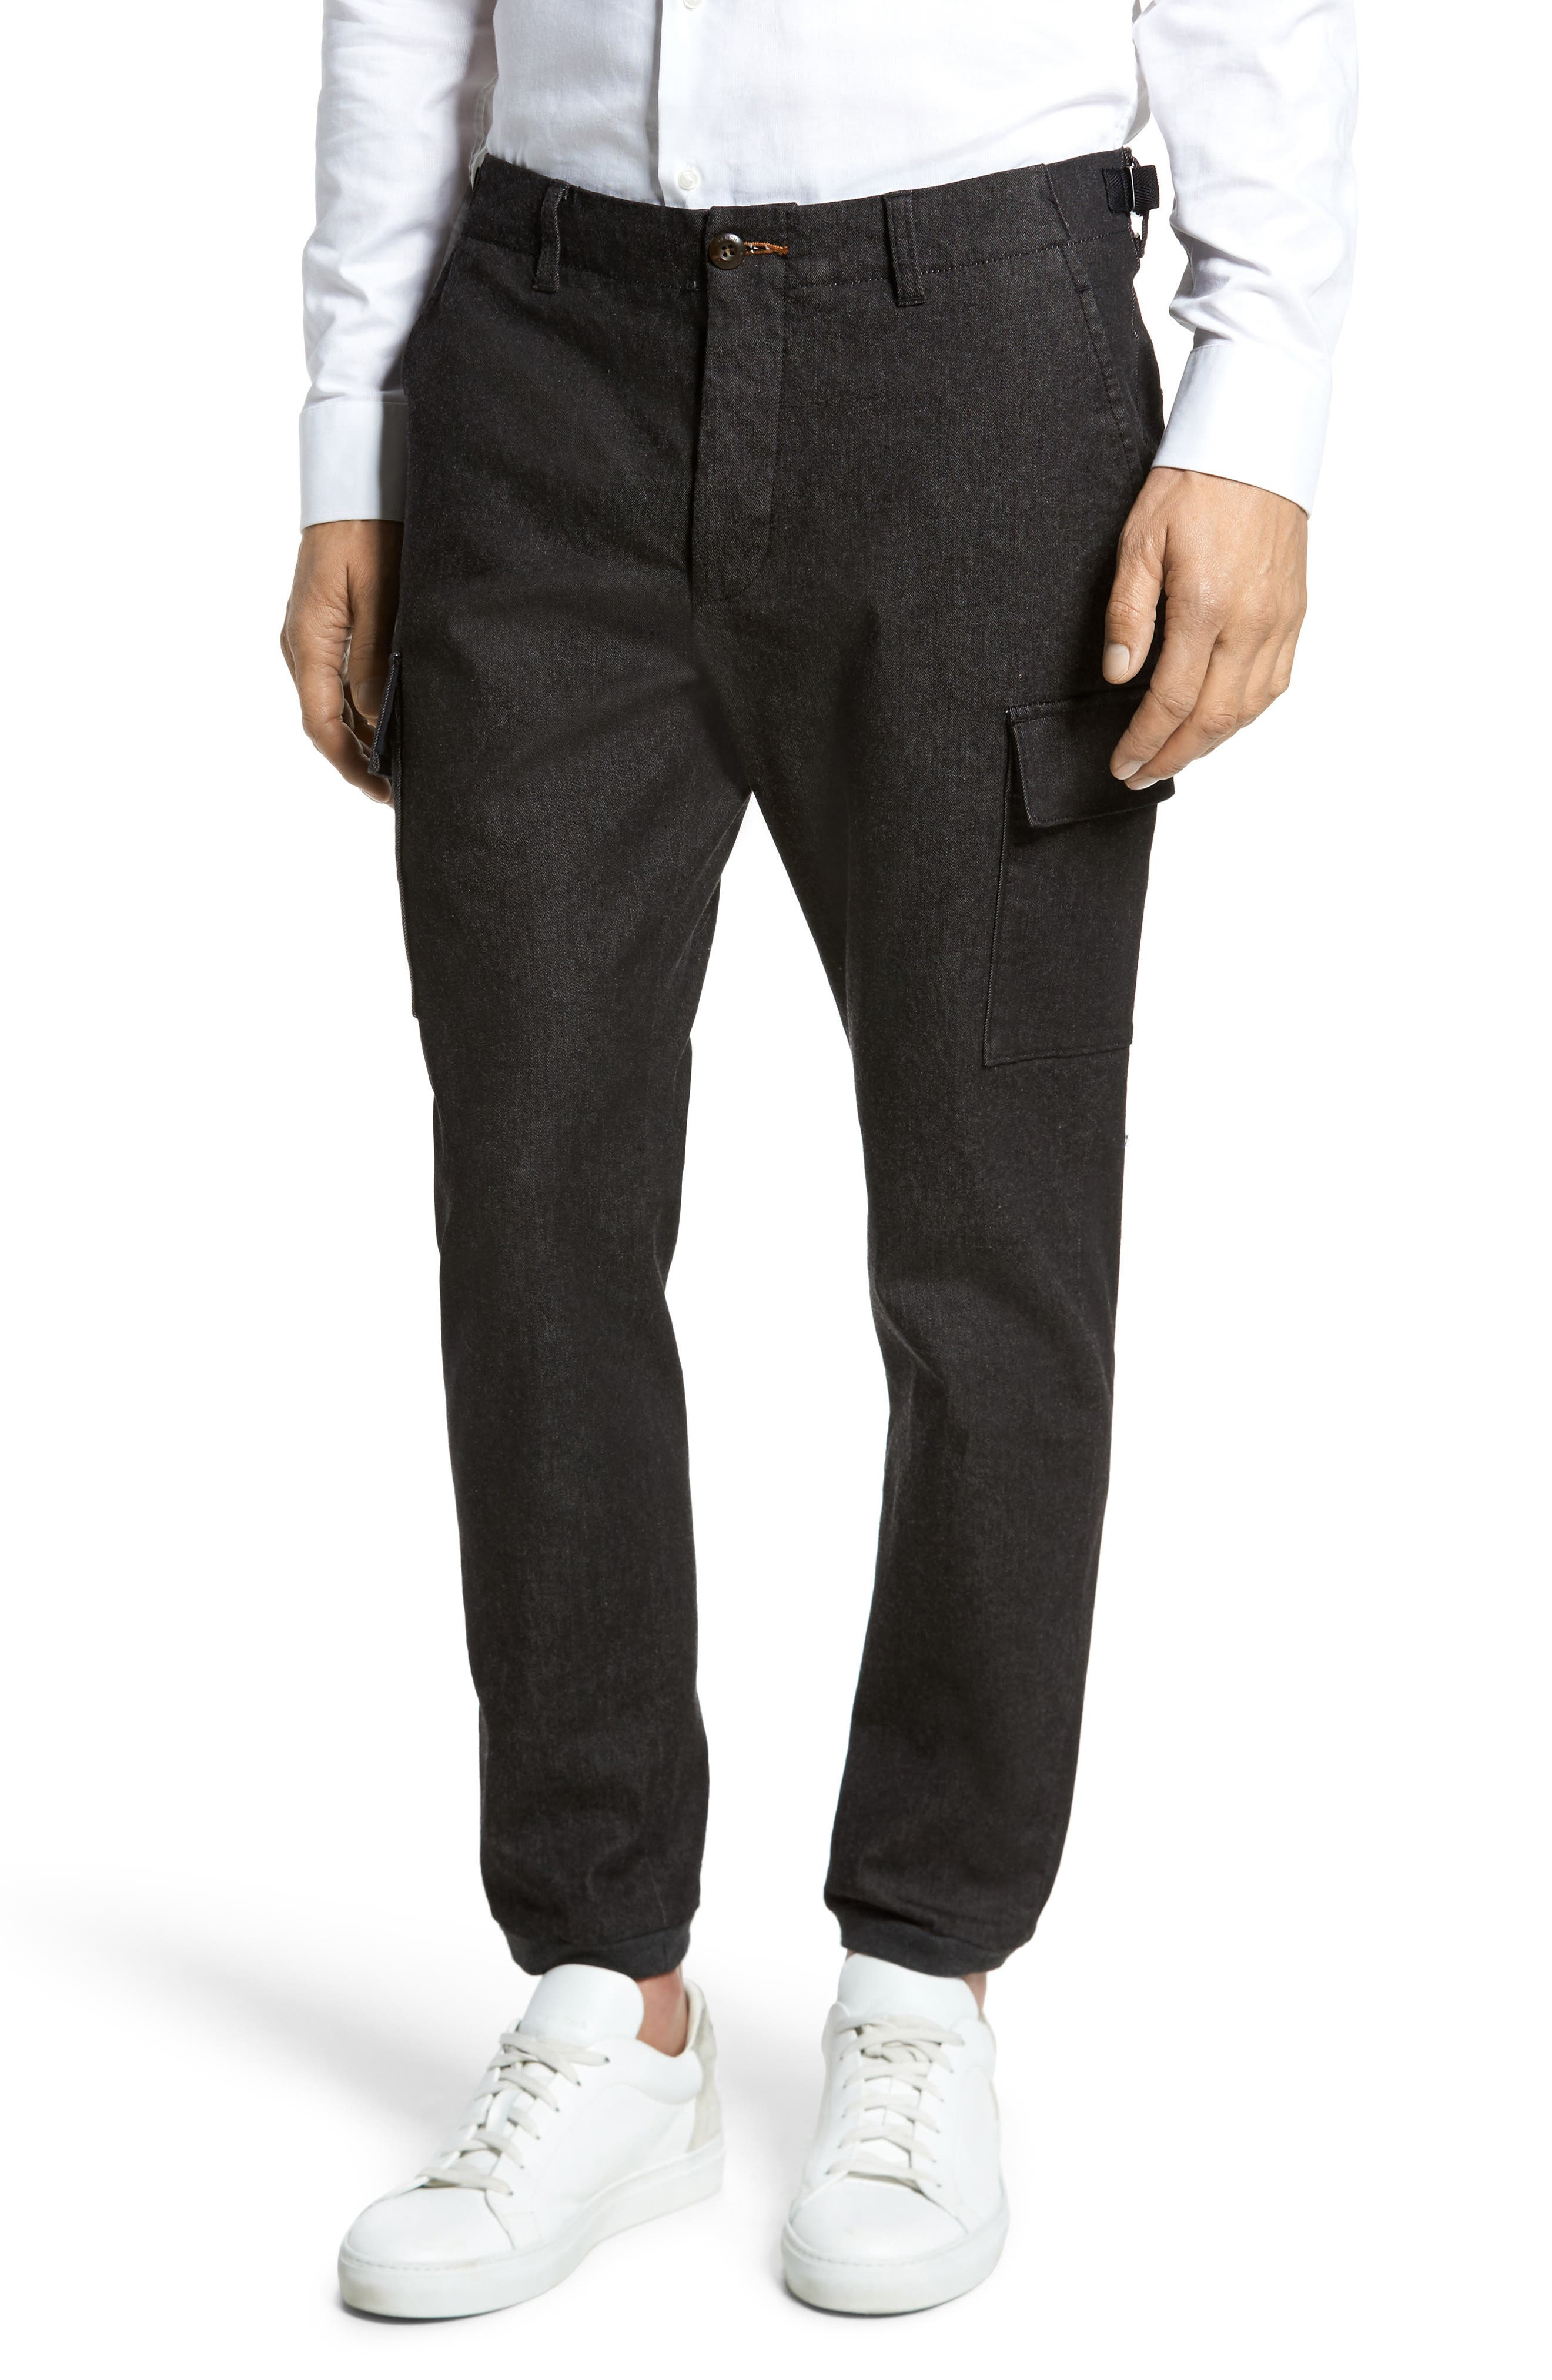 Brushed Stretch Twill Pants,                         Main,                         color,